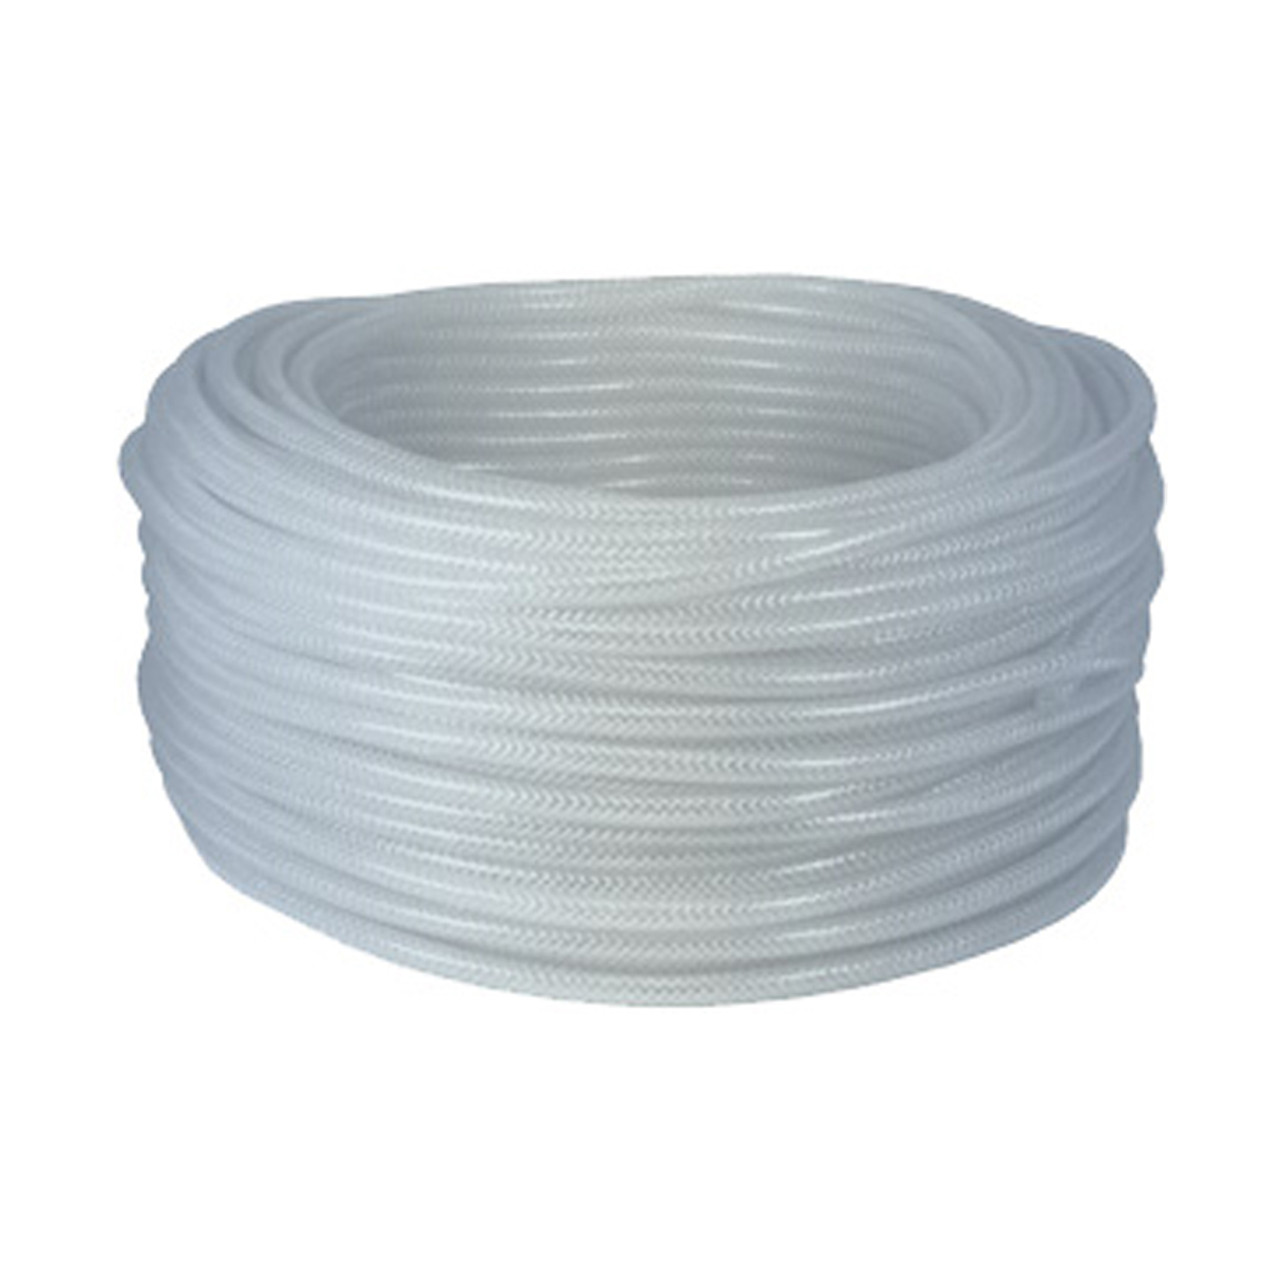 Dixon 3/8 in. ID x 5/8 in. OD Imported Clear Braided PVC Tubing, 114 ...